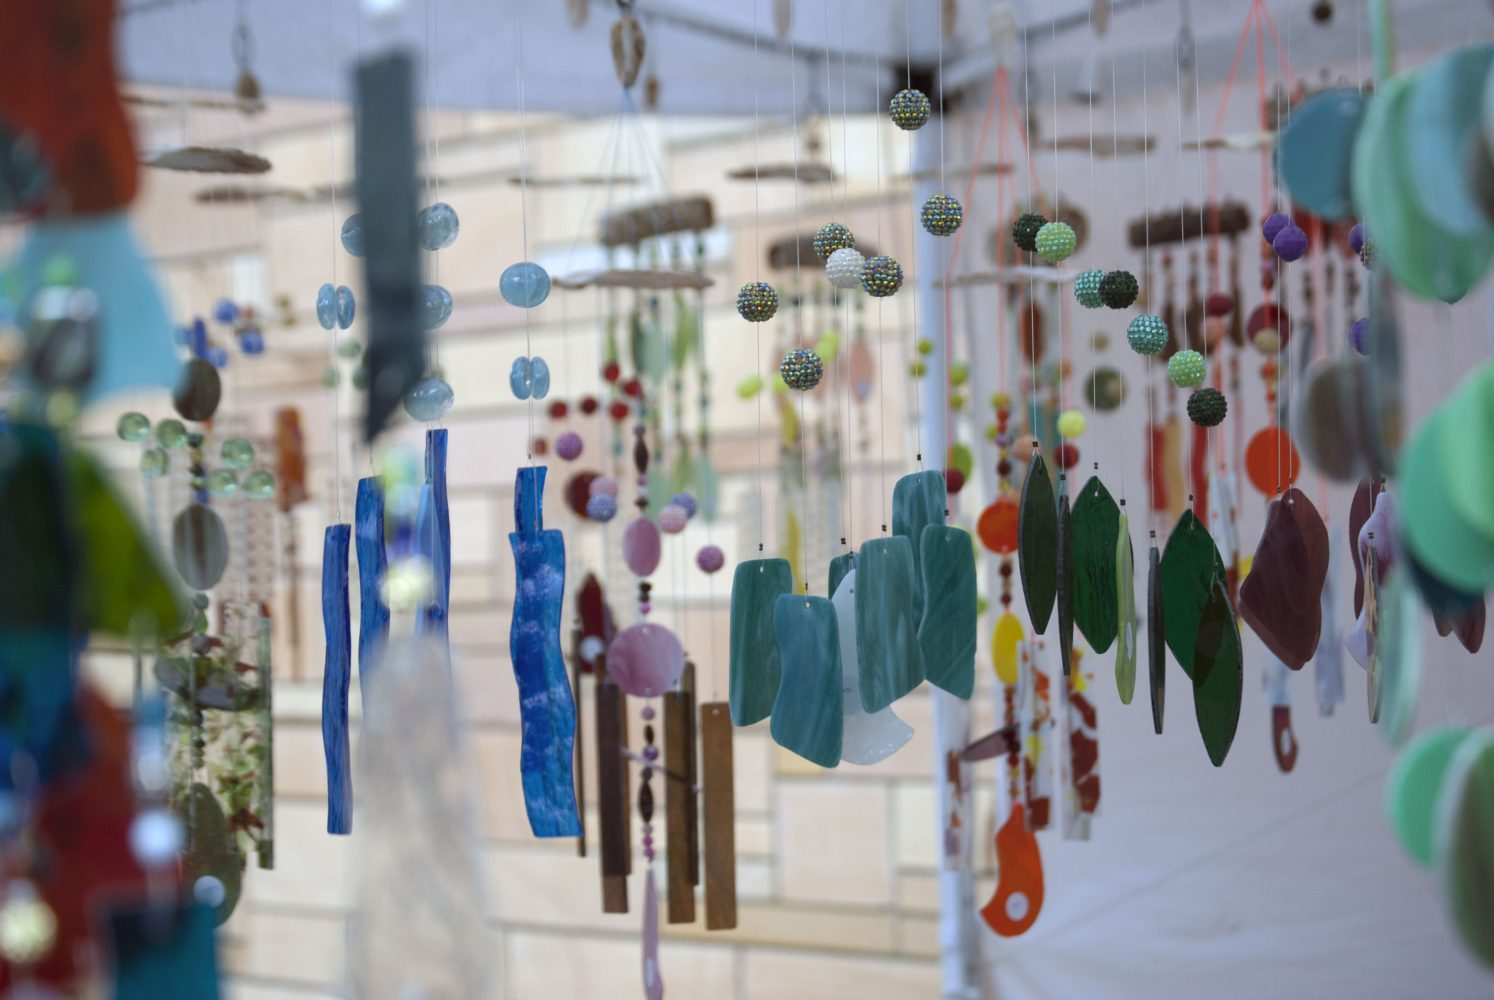 Jeff Kline, of Stuart, Fla., filled one of the first tents with his handcrafted stained-glass wind chimes at the Santa Fe College Springs Arts Festival Sunday.